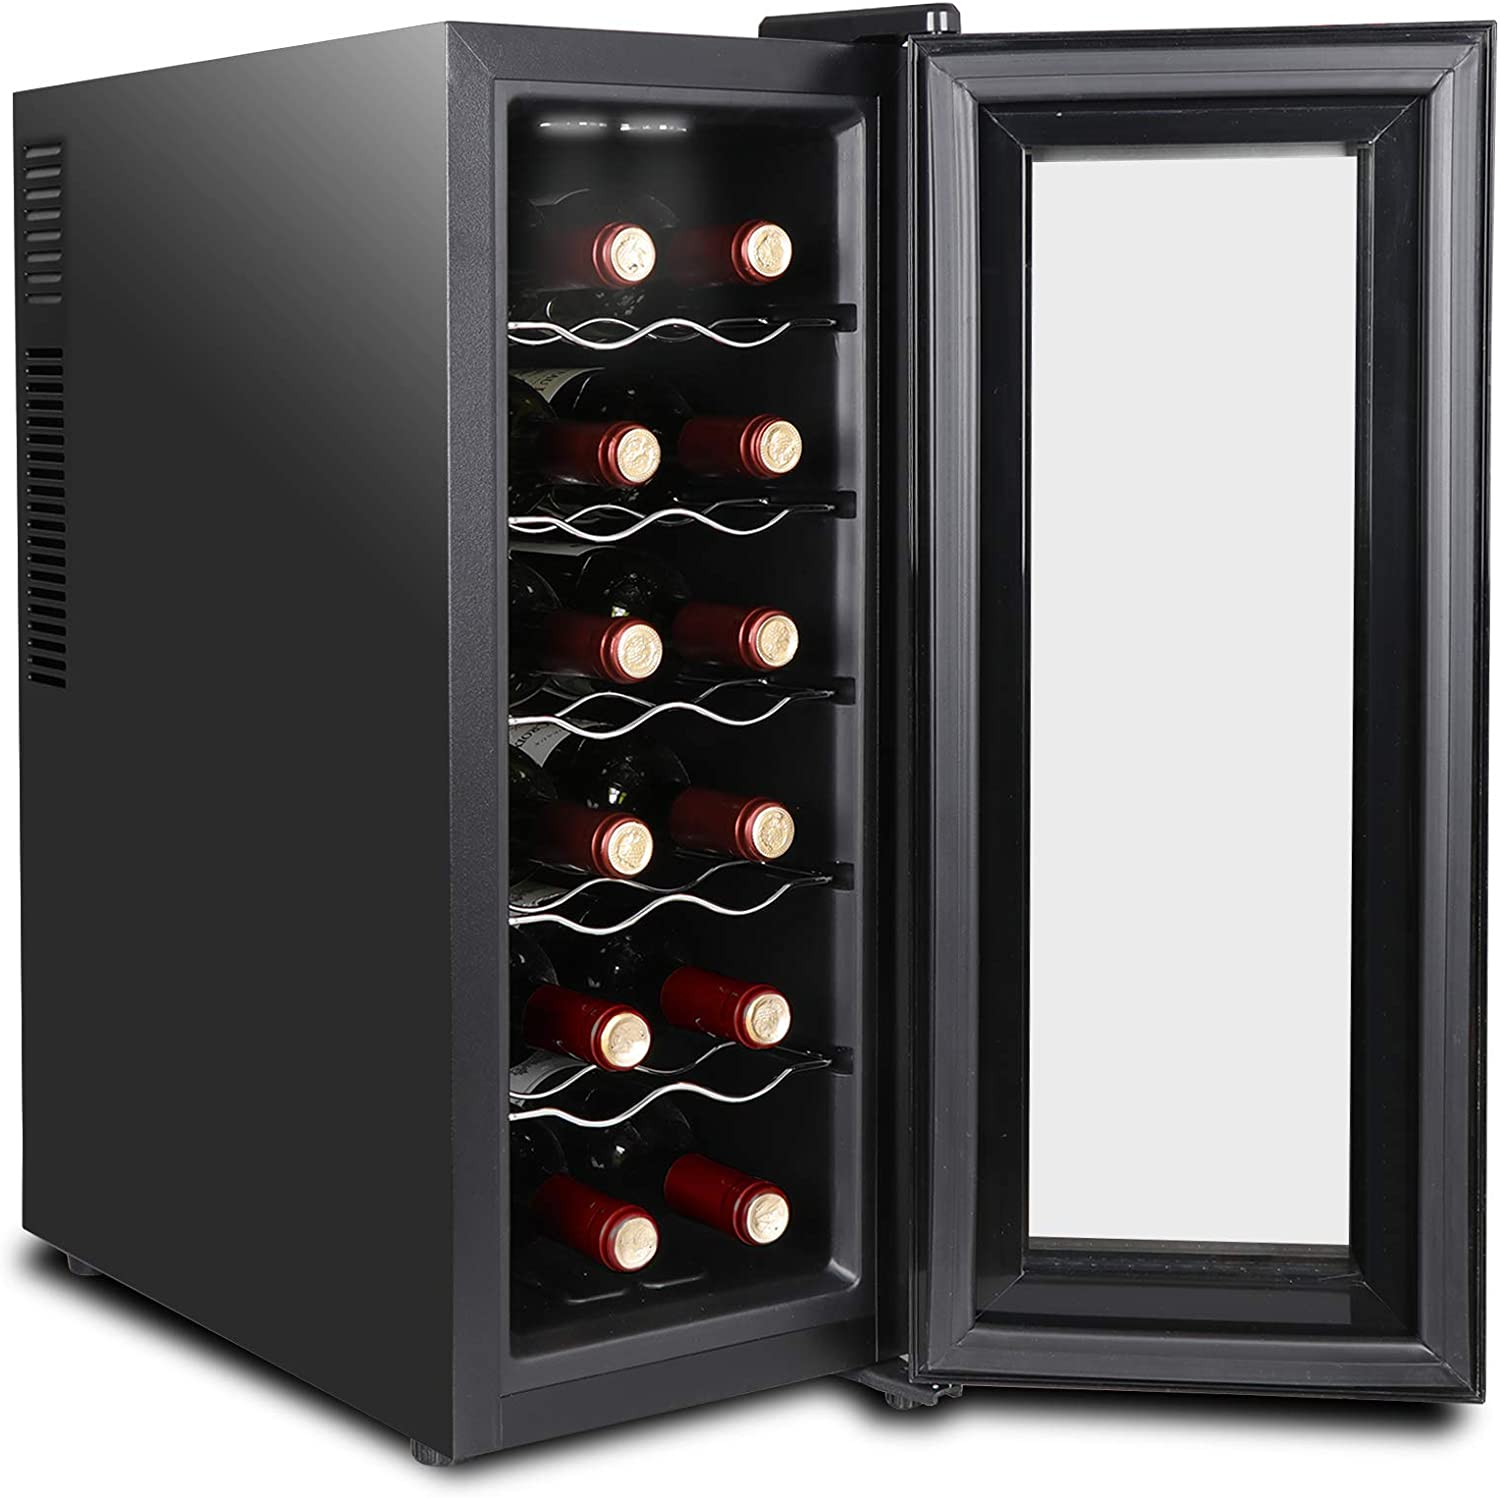 ZENSTYLE Thermoelectric Wine Cooler Chiller 12 Bottle Capacity Digital Control Panel Temperature Display Wine Cellar with Glass Door Quiet Operation Wine Refrigerator for Champagne Red and White Wine